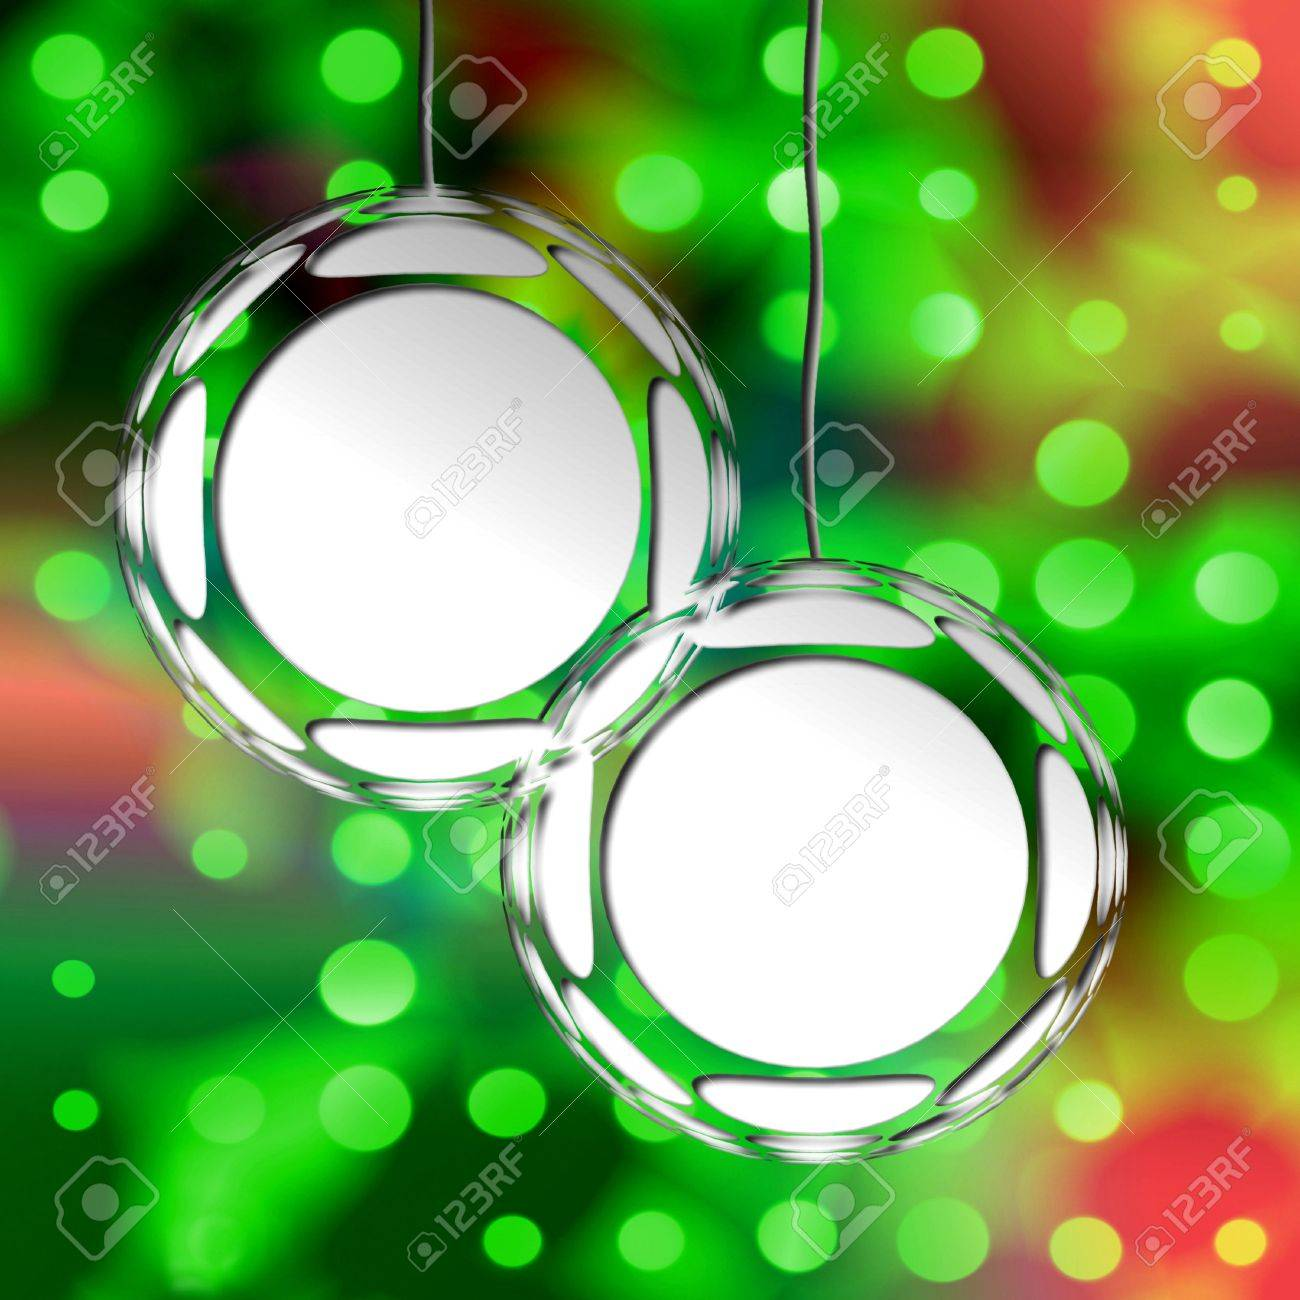 Christmas ornament frame - Empty Christmas Ornament Frames On Holiday Lights Background Ready For Your Photos Or Text Stock Photo